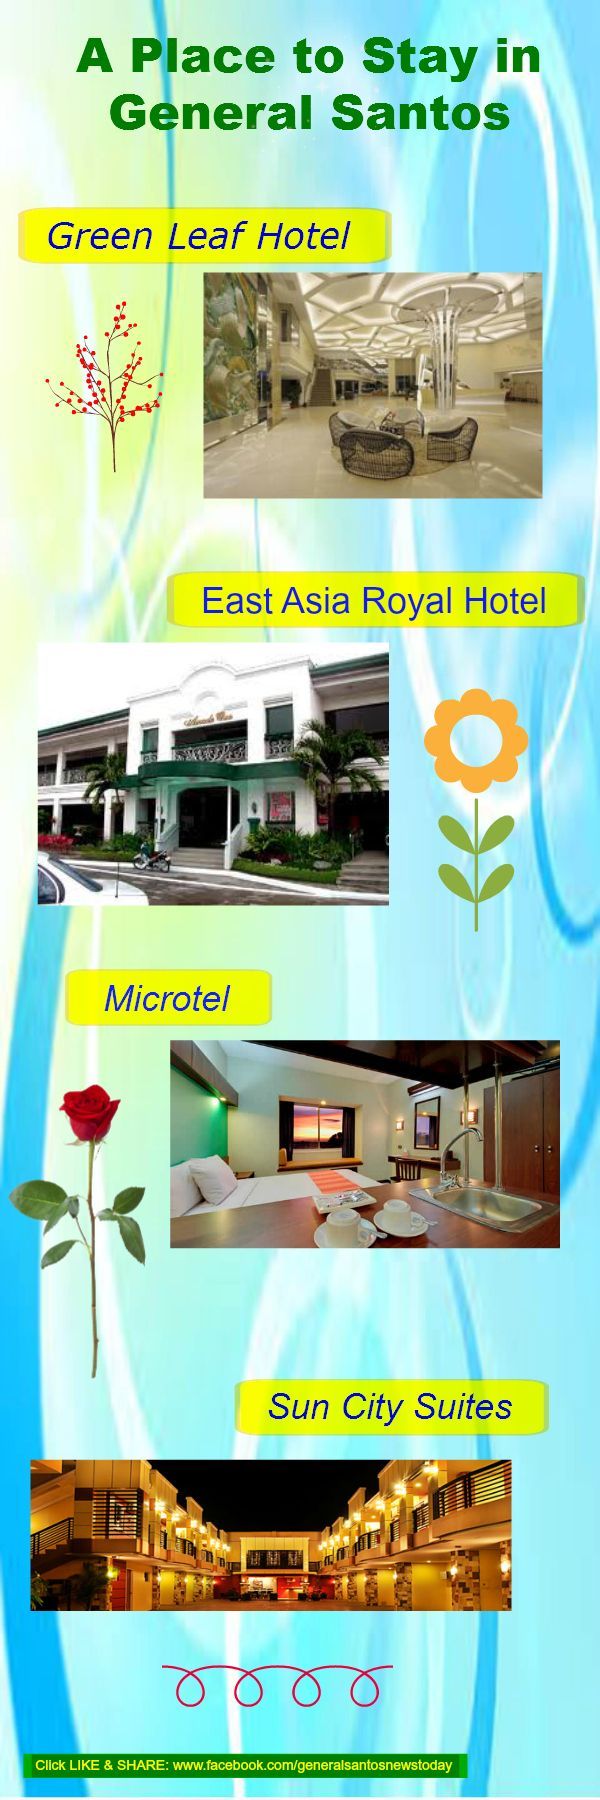 A place to stay in General Santos